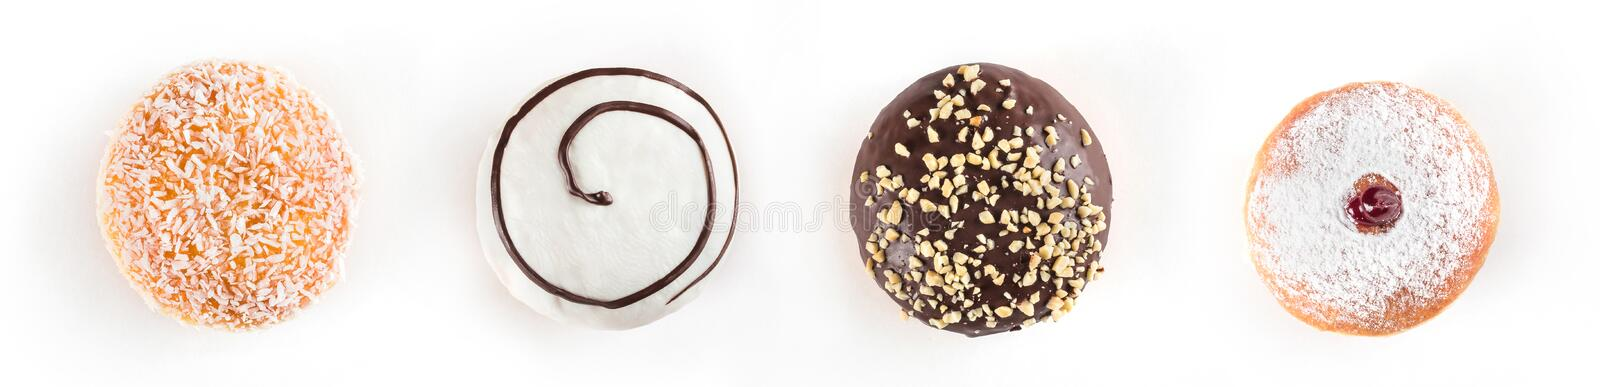 Set of delicious and assorted doughnuts isolated on white background, view from side stock photo